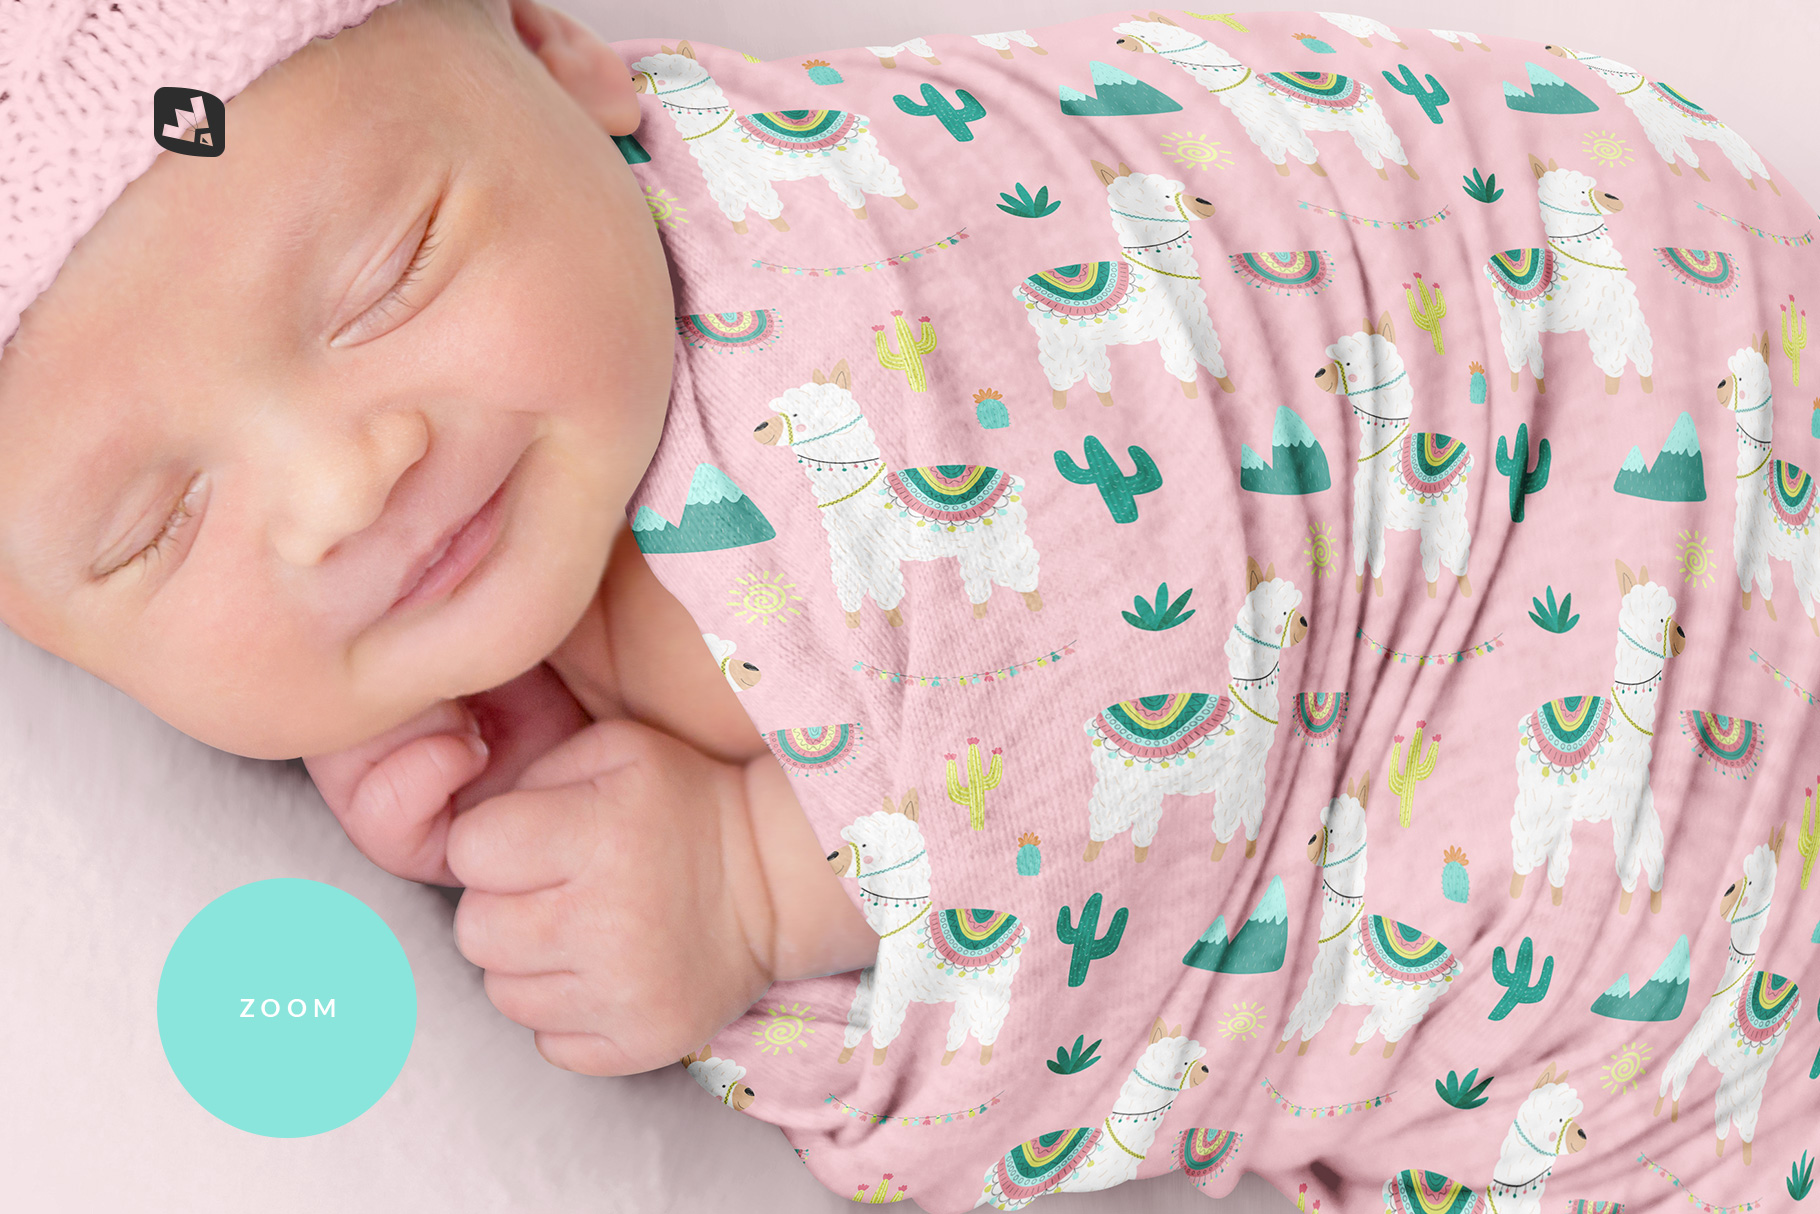 zoomed in image of the newborn swaddle blanket mockup